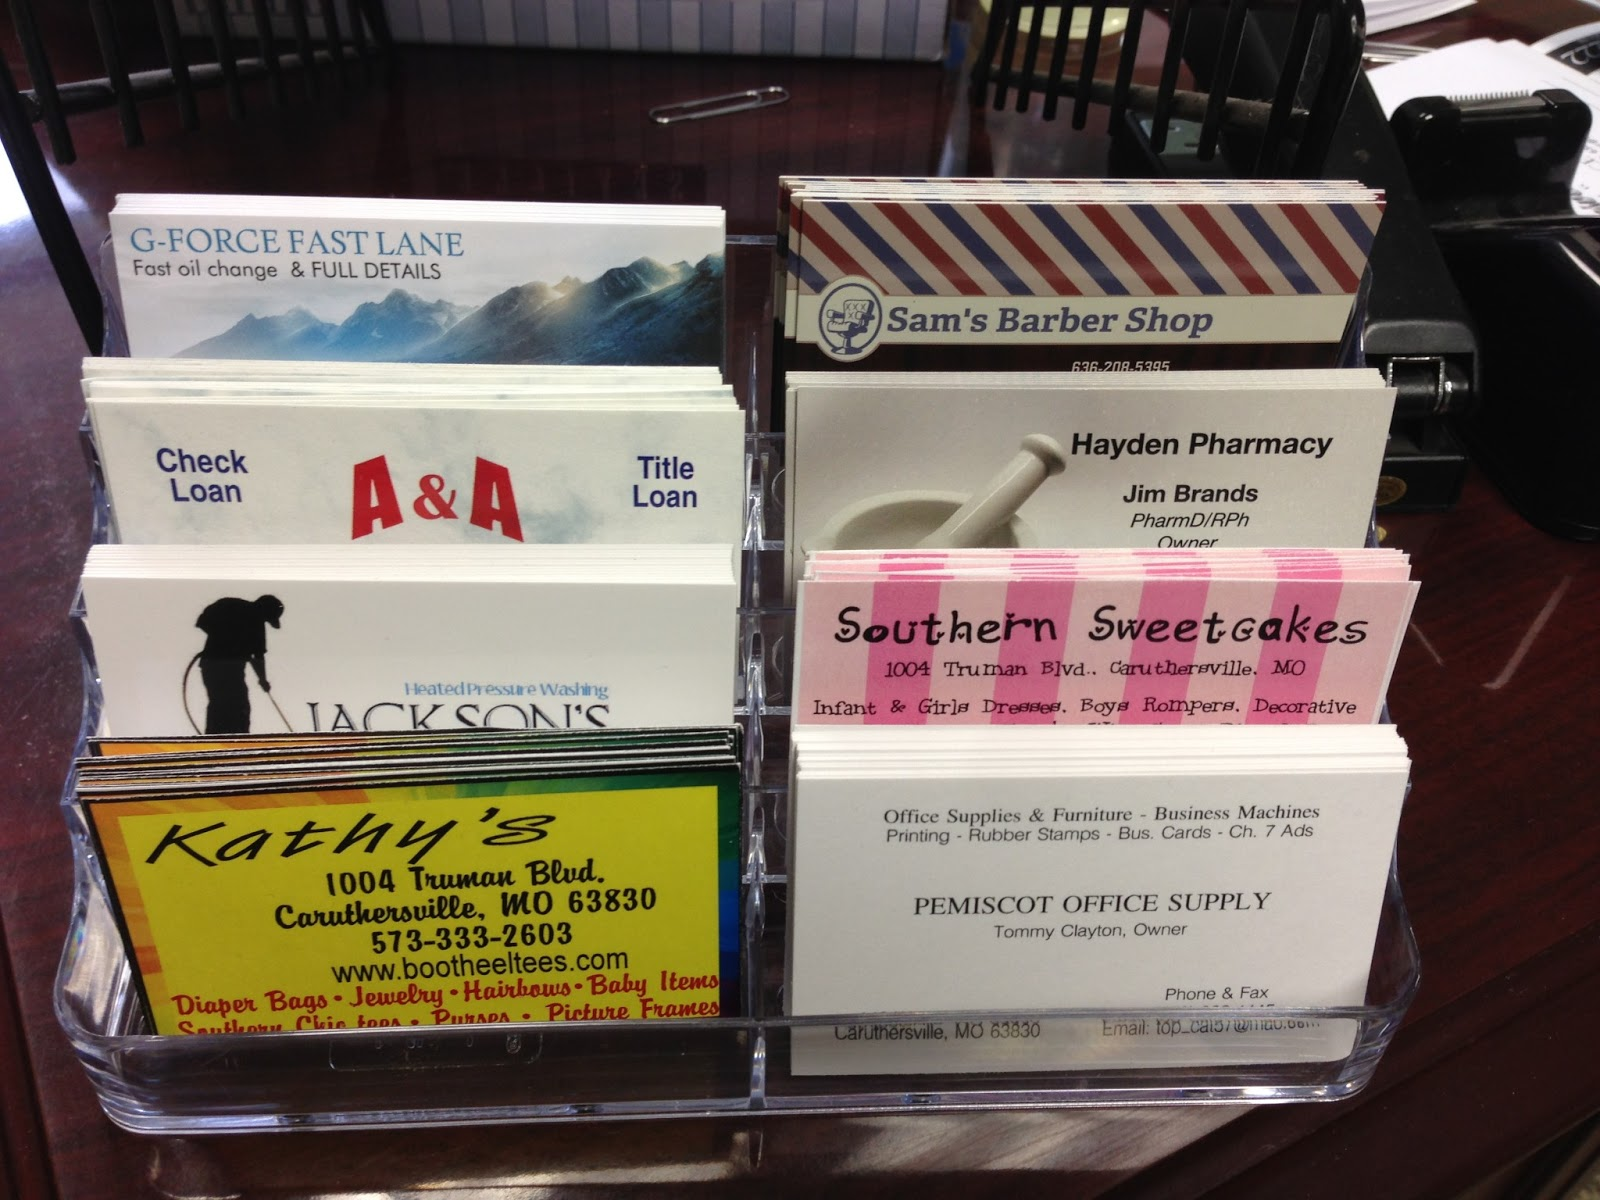 Caruthersville Chamber of Commerce: Business Card Displays